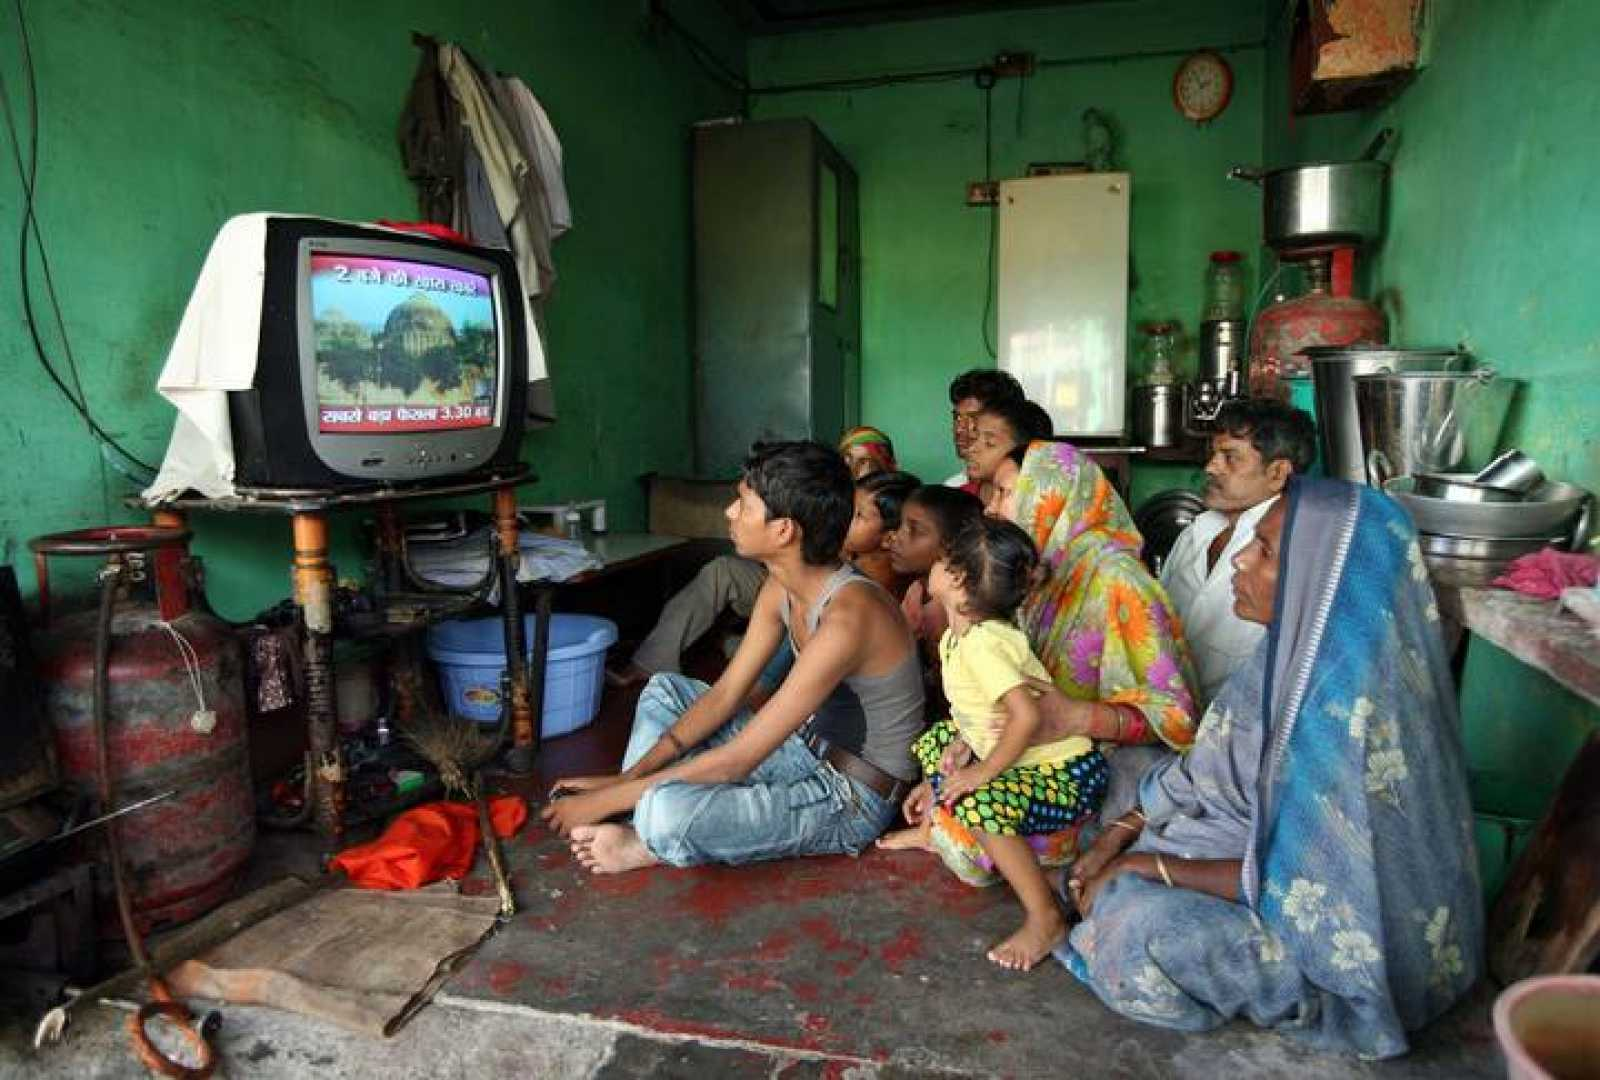 A family watches a TV news channel in a room in Ayodhya September 30, 2010. REUTERS/Mukesh Gupta